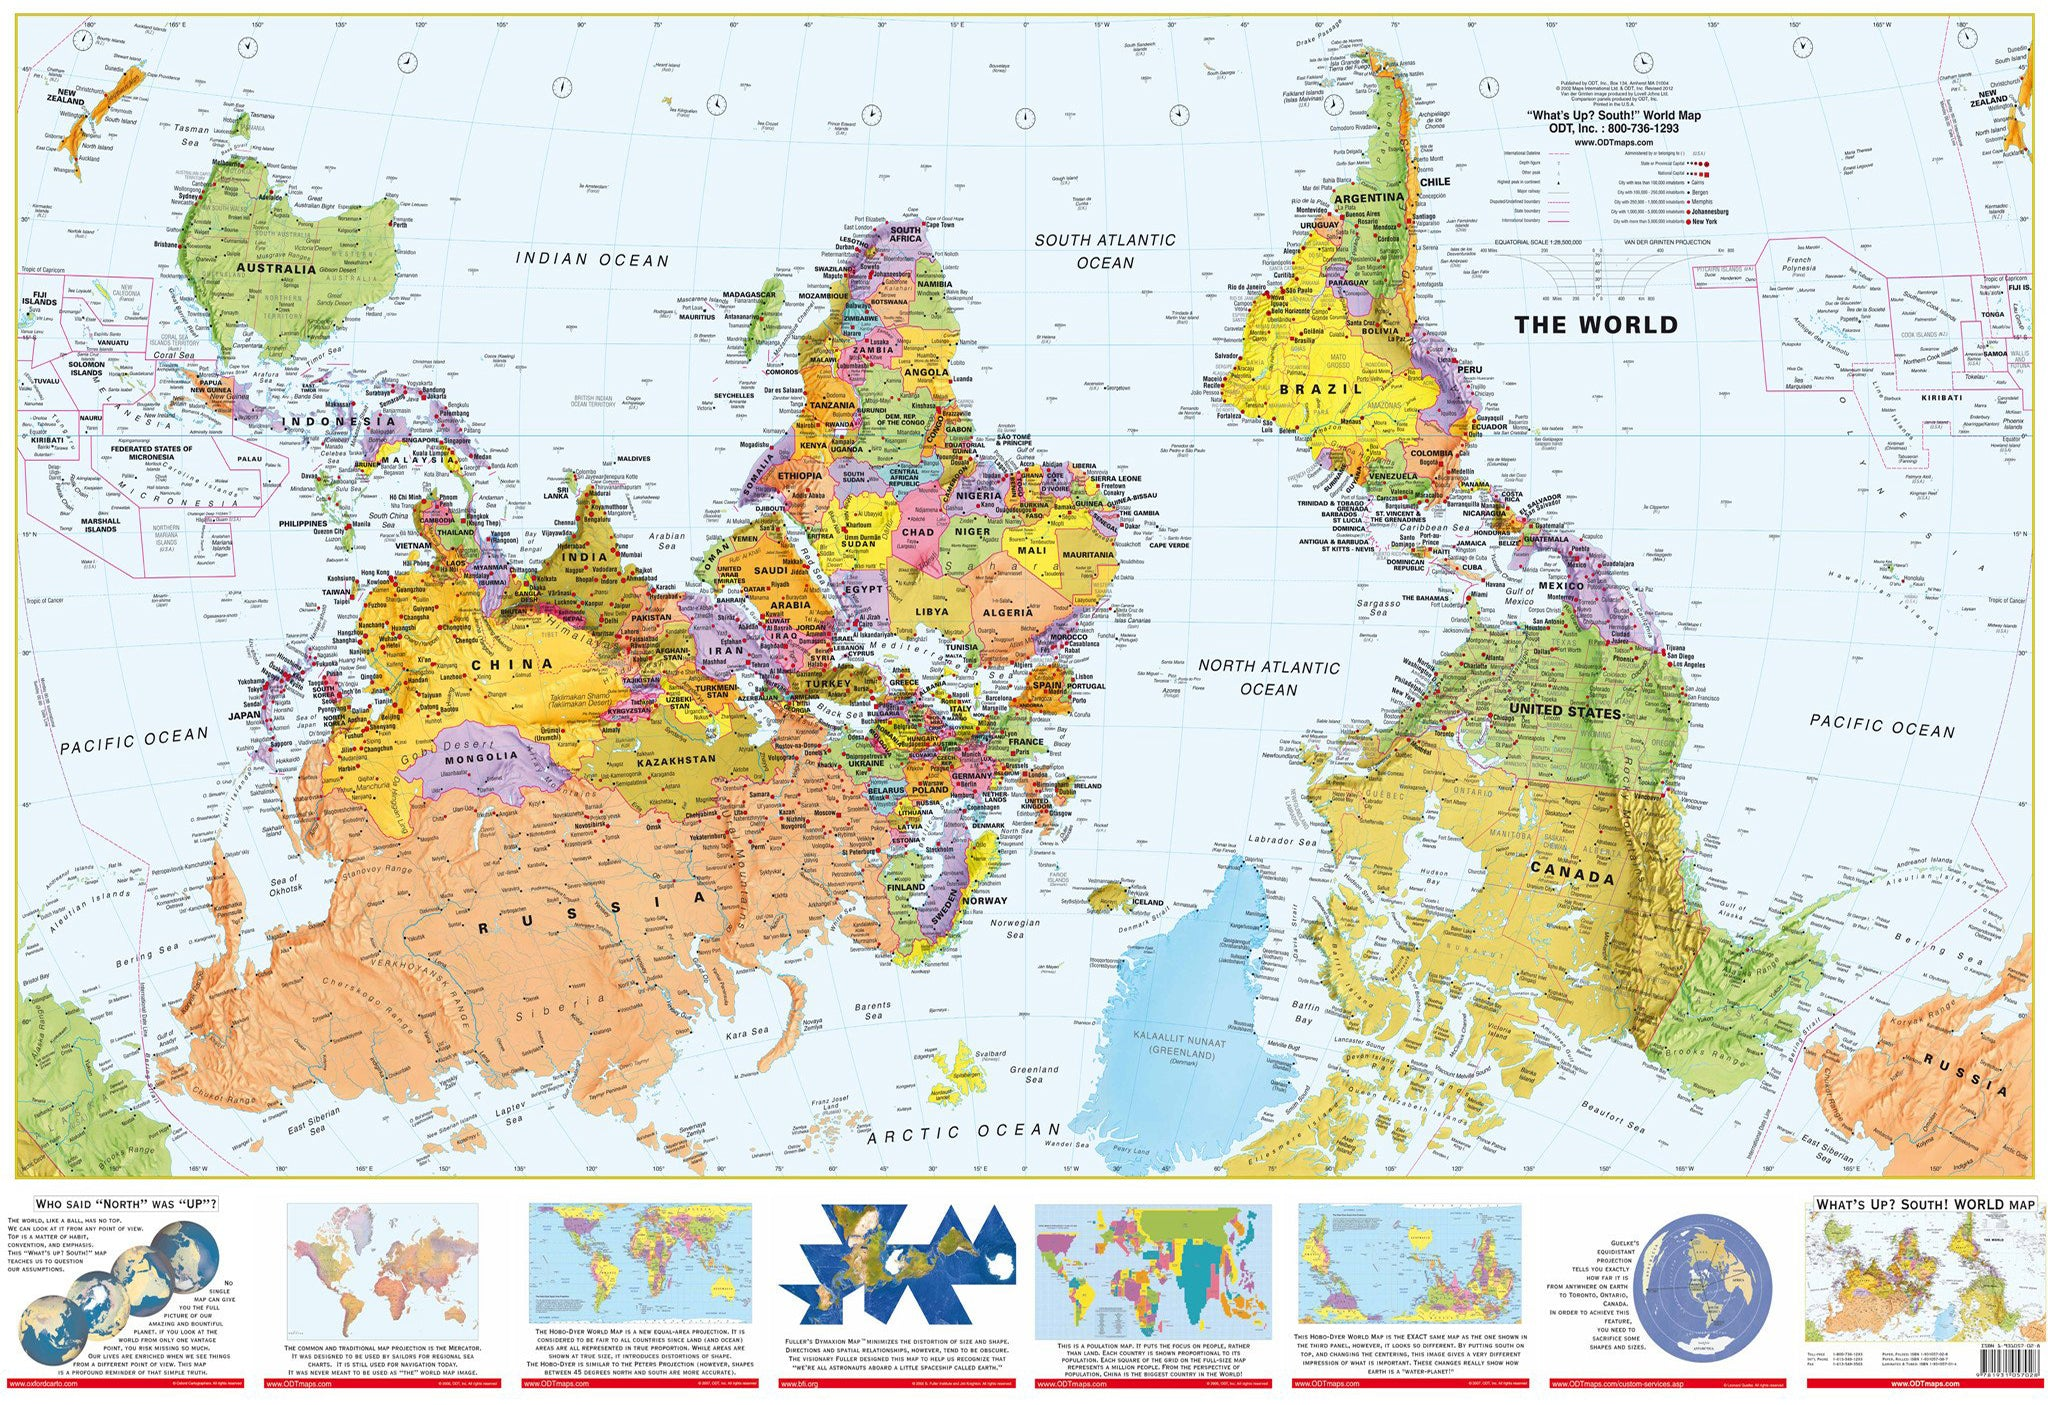 UPSIDE DOWN STYLE POSTER 24x36-11350 WORLD MAP